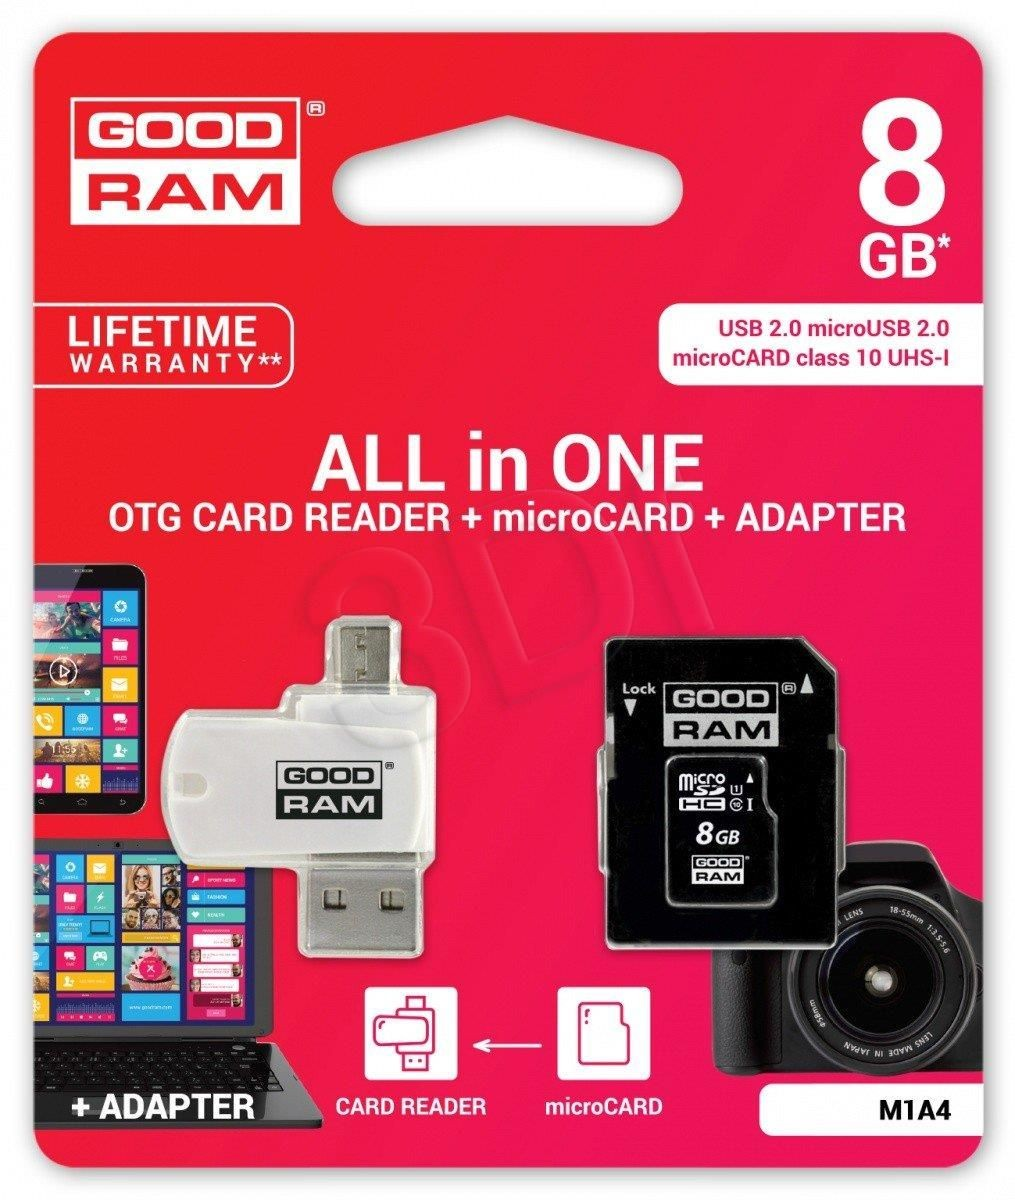 GoodRam Karta pamięci MicroSDHC 8GB All in one - microCARD class 10 UHS I + adapter + OTG card reader USB/microUSB 2.0